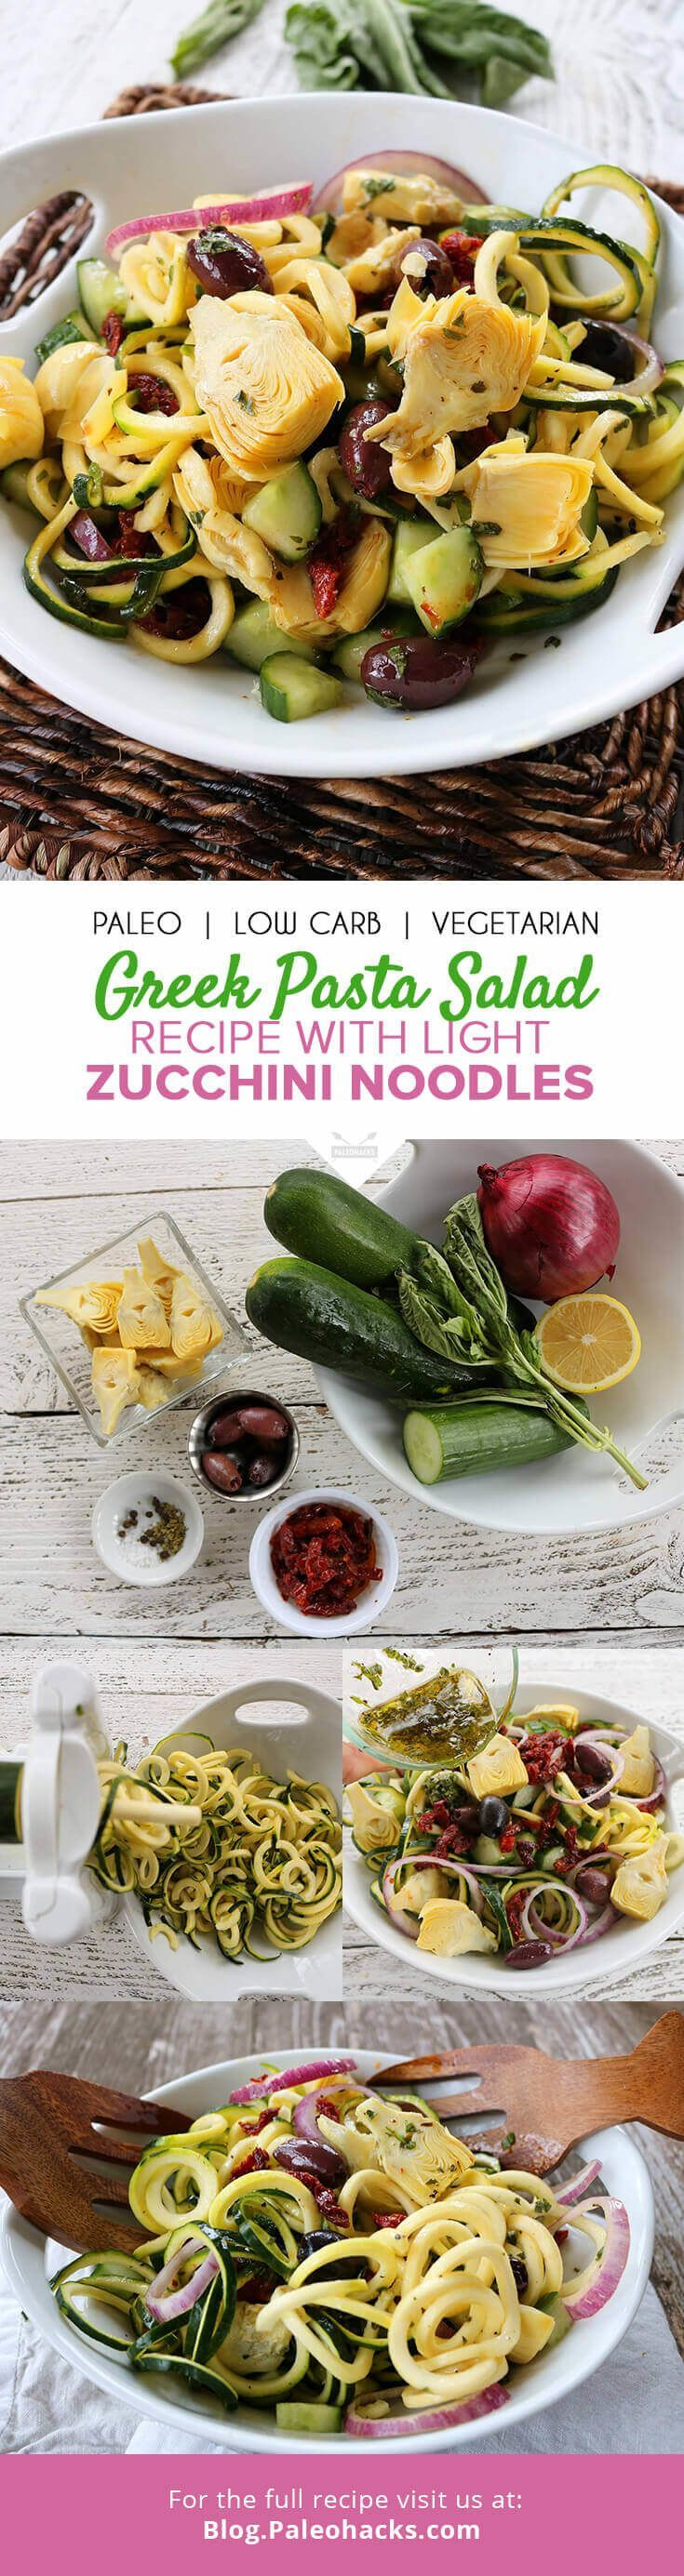 Step aside lettuce, zucchini noodles will be taking over from here! Topped with a lemon basil dressing, this antipasto-style salad is packed with Mediterranean vegetables over curly zucchini noodles for a pasta salad that eats like a meal. Get the recipe here: http://paleo.co/greekzoodlessalad